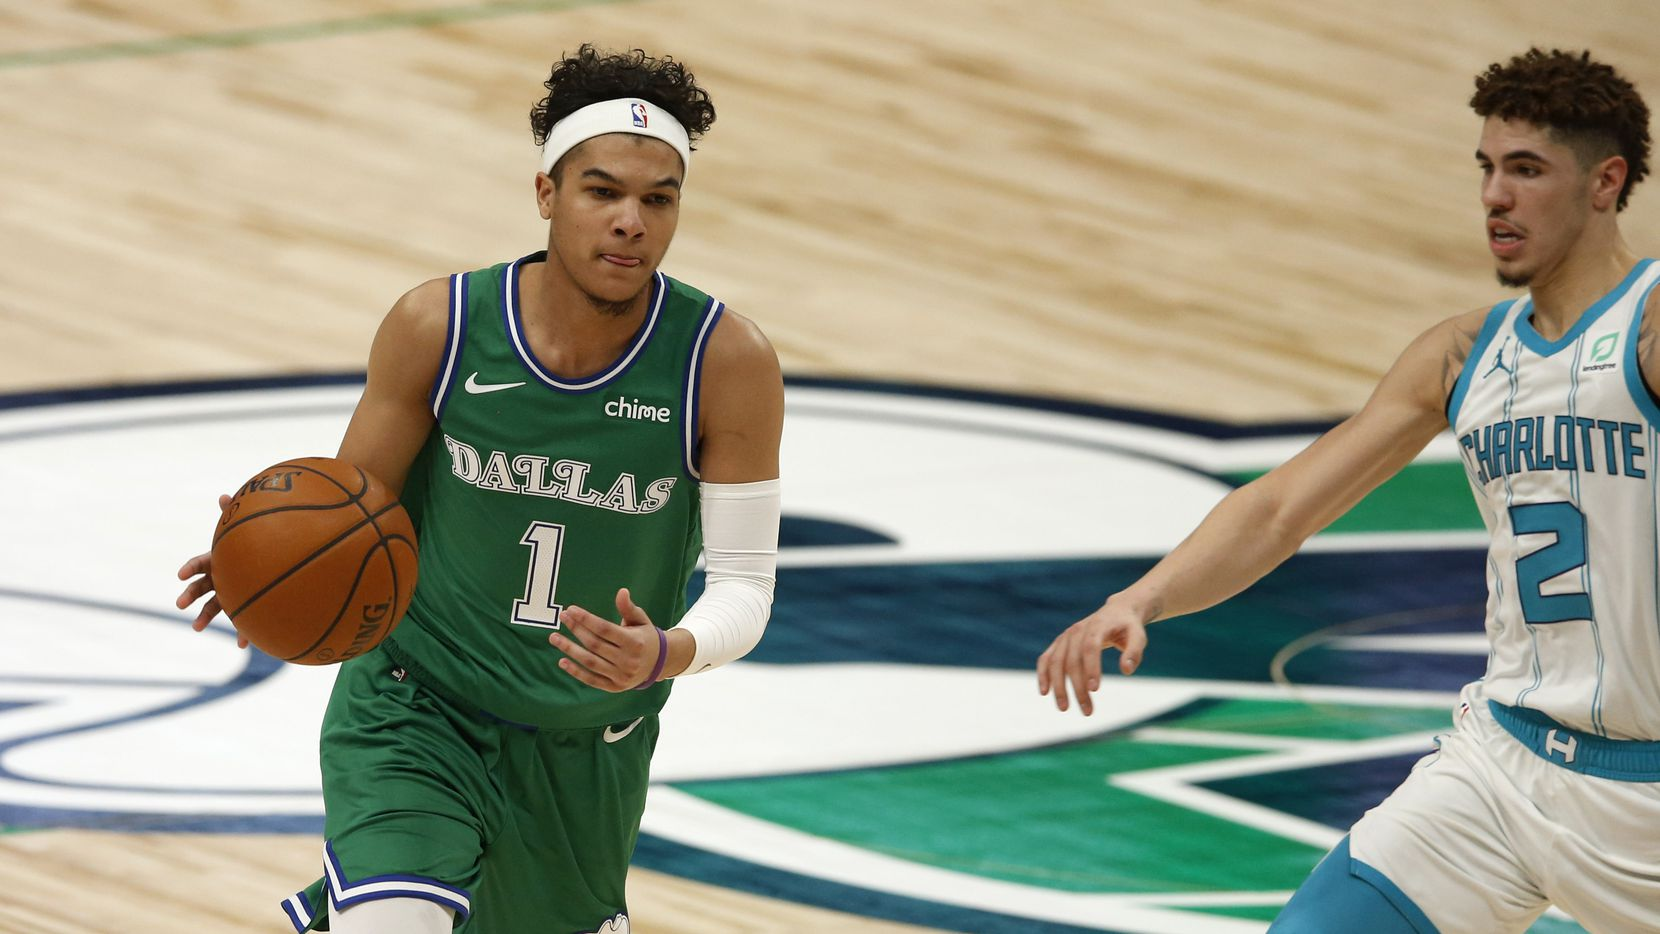 Dallas Mavericks guard Tyrell Terry (1) dribbles around Charlotte Hornets guard LaMelo Ball (2) during the fourth quarter of play in the home opener at American Airlines Center on Wednesday, December 30, 2020 in Dallas. The Mavericks lost to the Hornets 118-99.